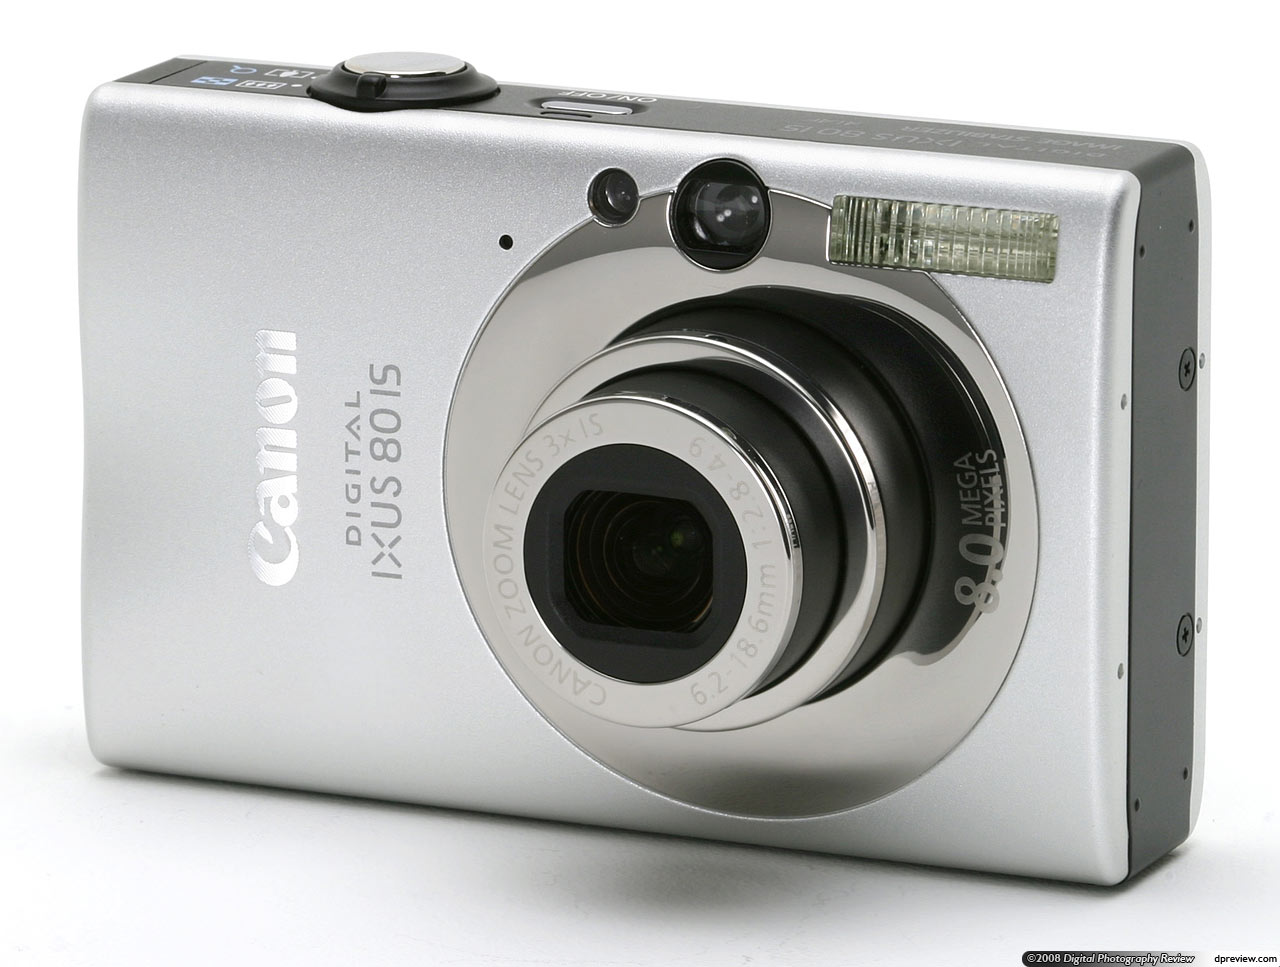 Awesome deal on an Awesome Camera!